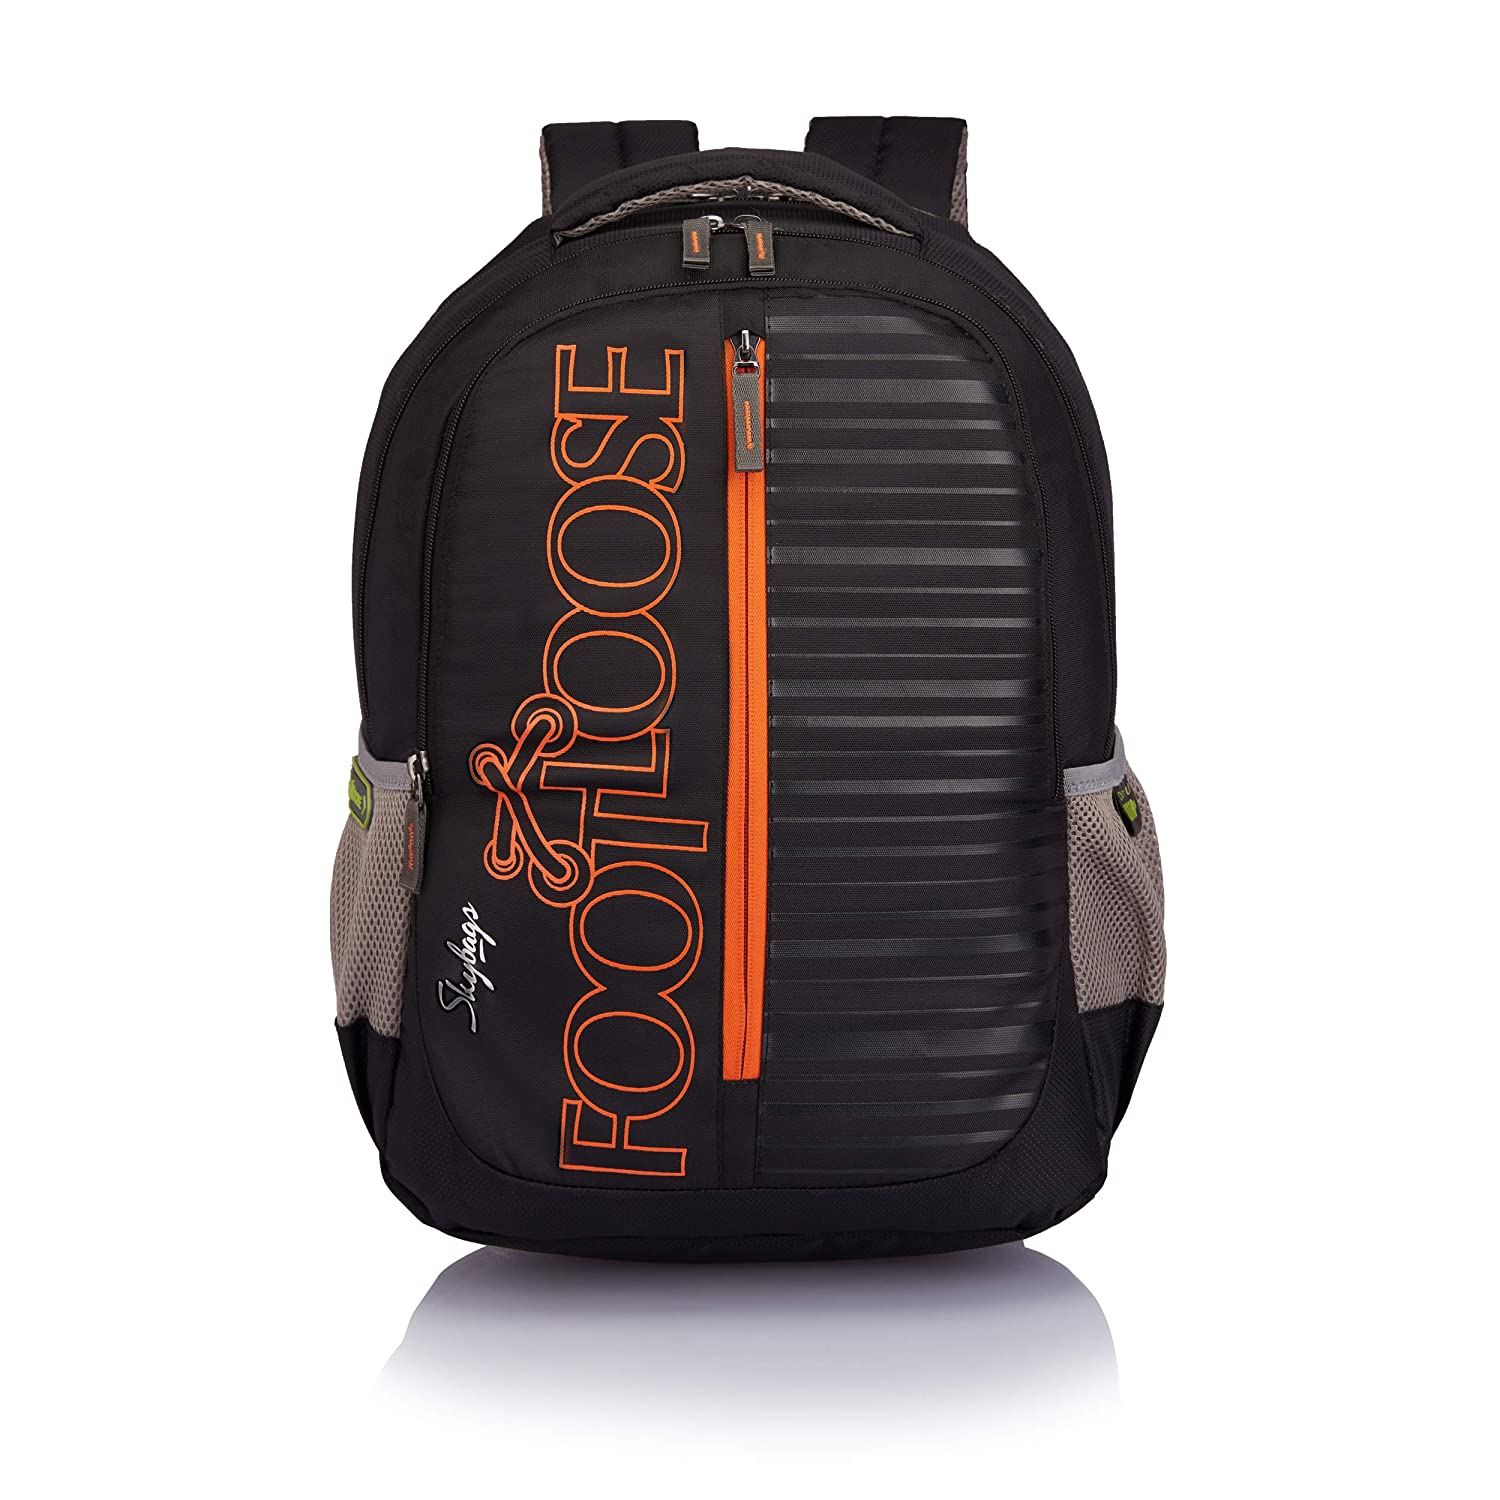 Skybags Vough 33 Ltrs Black Laptop Backpack (LPBPVOGEBLK)